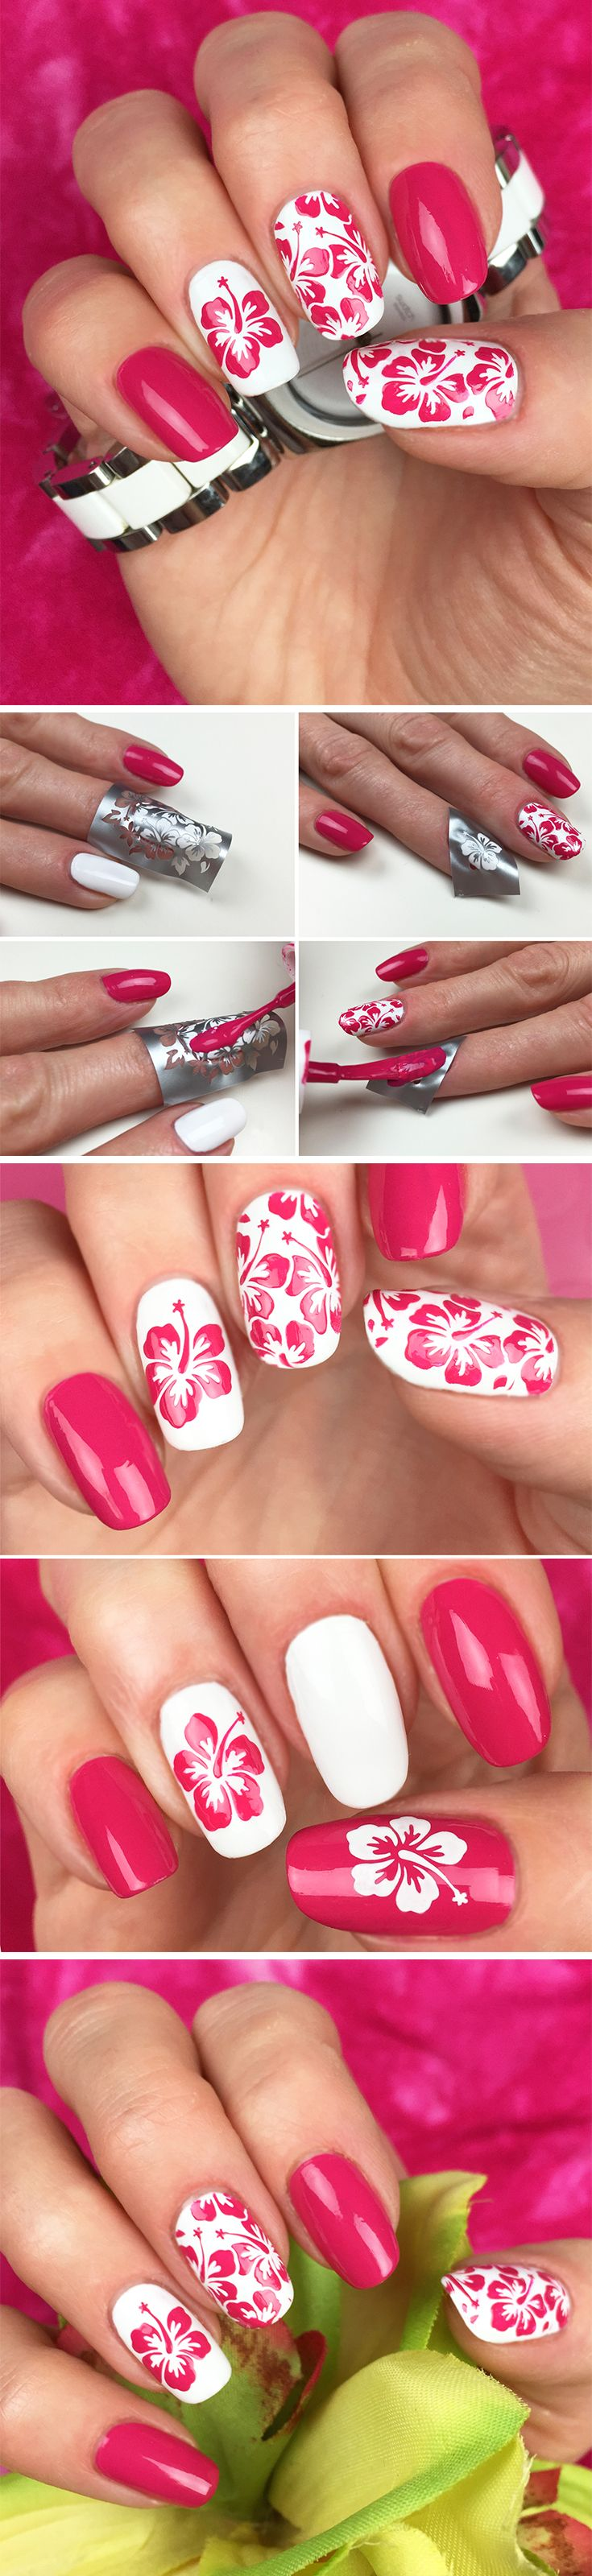 "Nail Stencils design ""Aloha""#nailart for more findings pls visit www.pinterest.com/escherpescarves/"